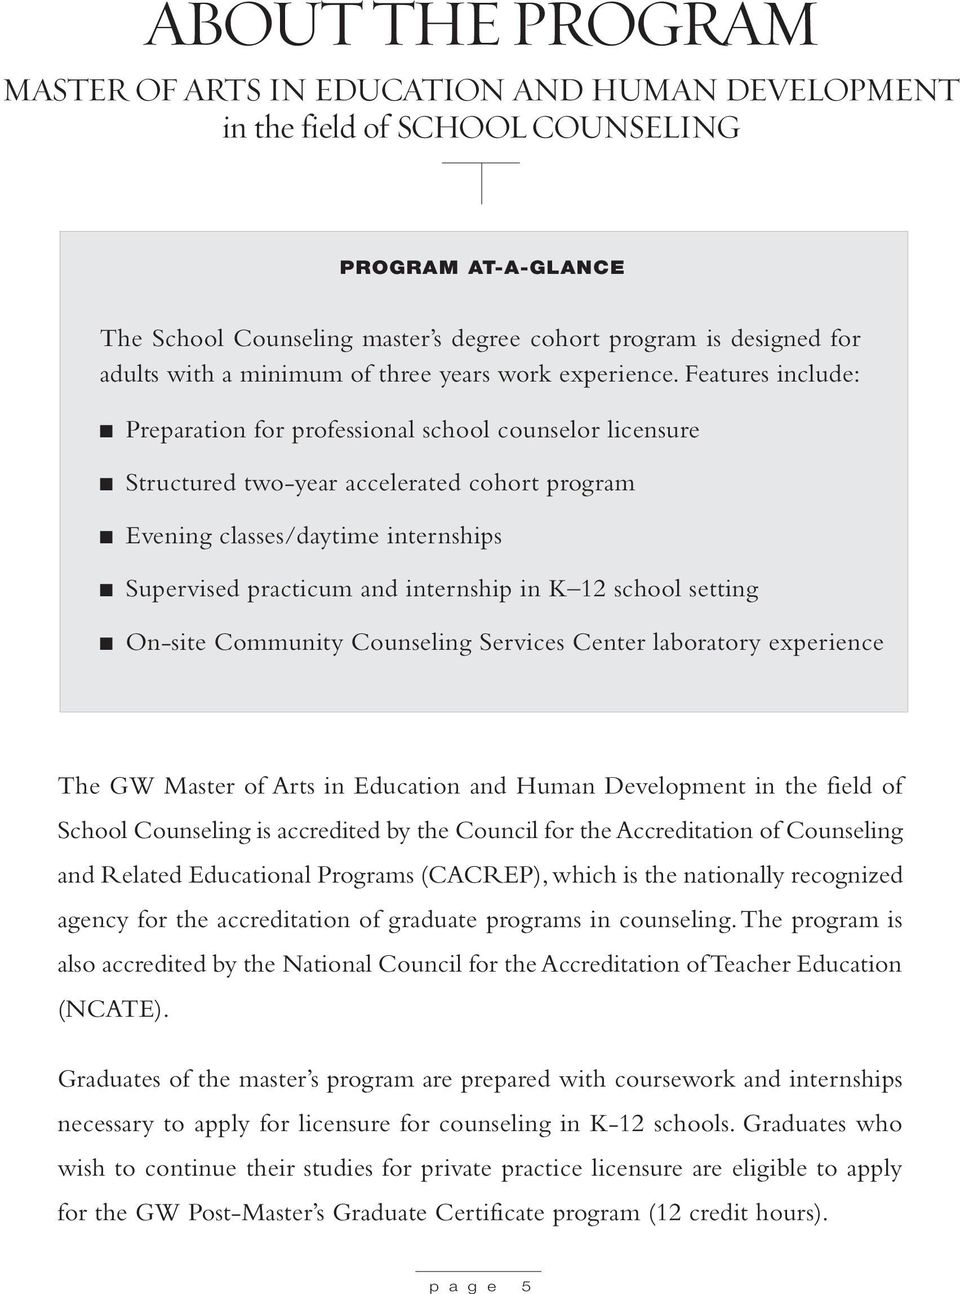 Features include: Preparation for professional school counselor licensure Structured two-year accelerated cohort program Evening classes/daytime internships Supervised practicum and internship in K